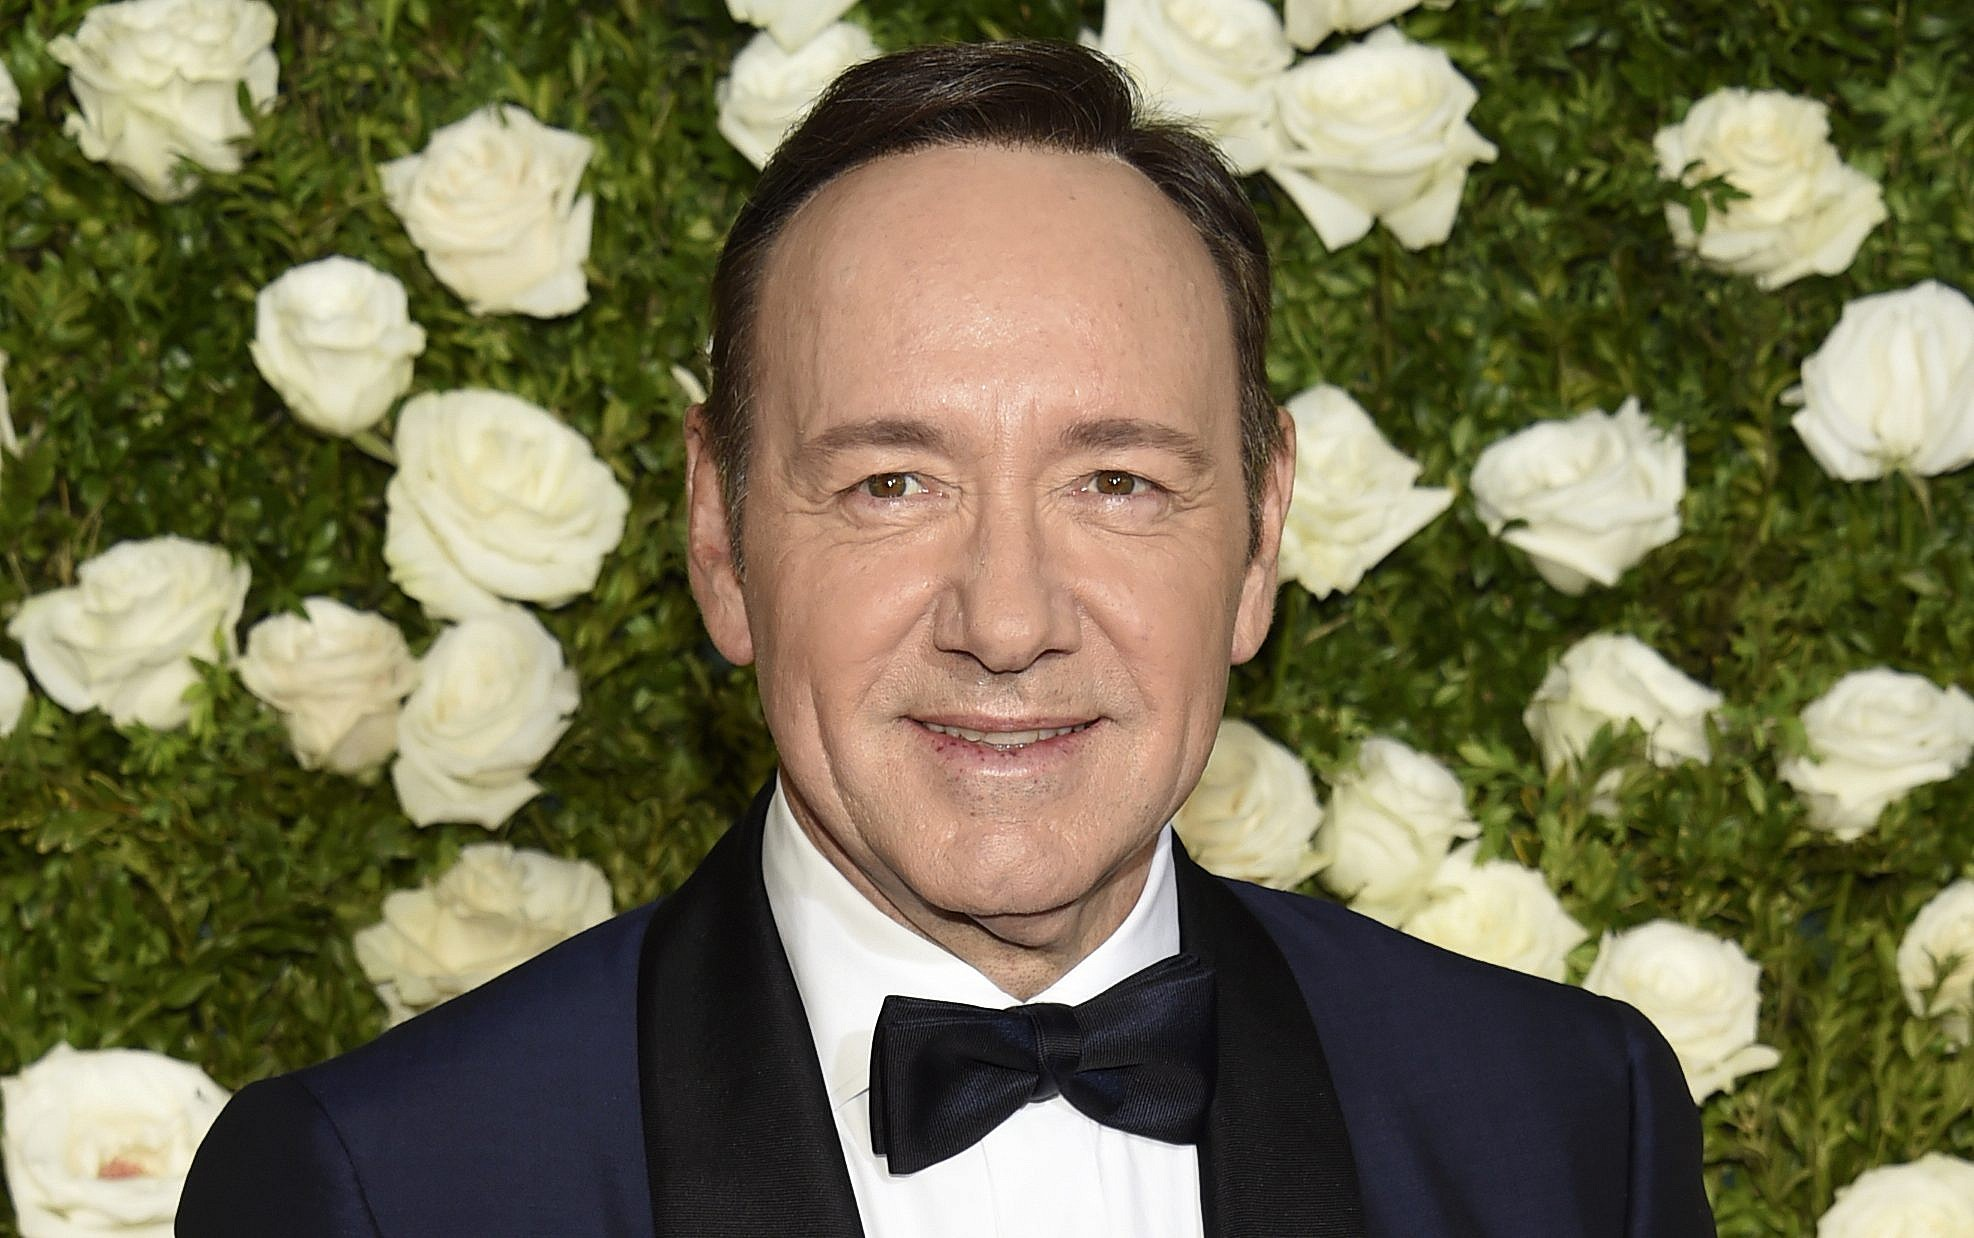 New allegation against actor Kevin Spacey comes to light